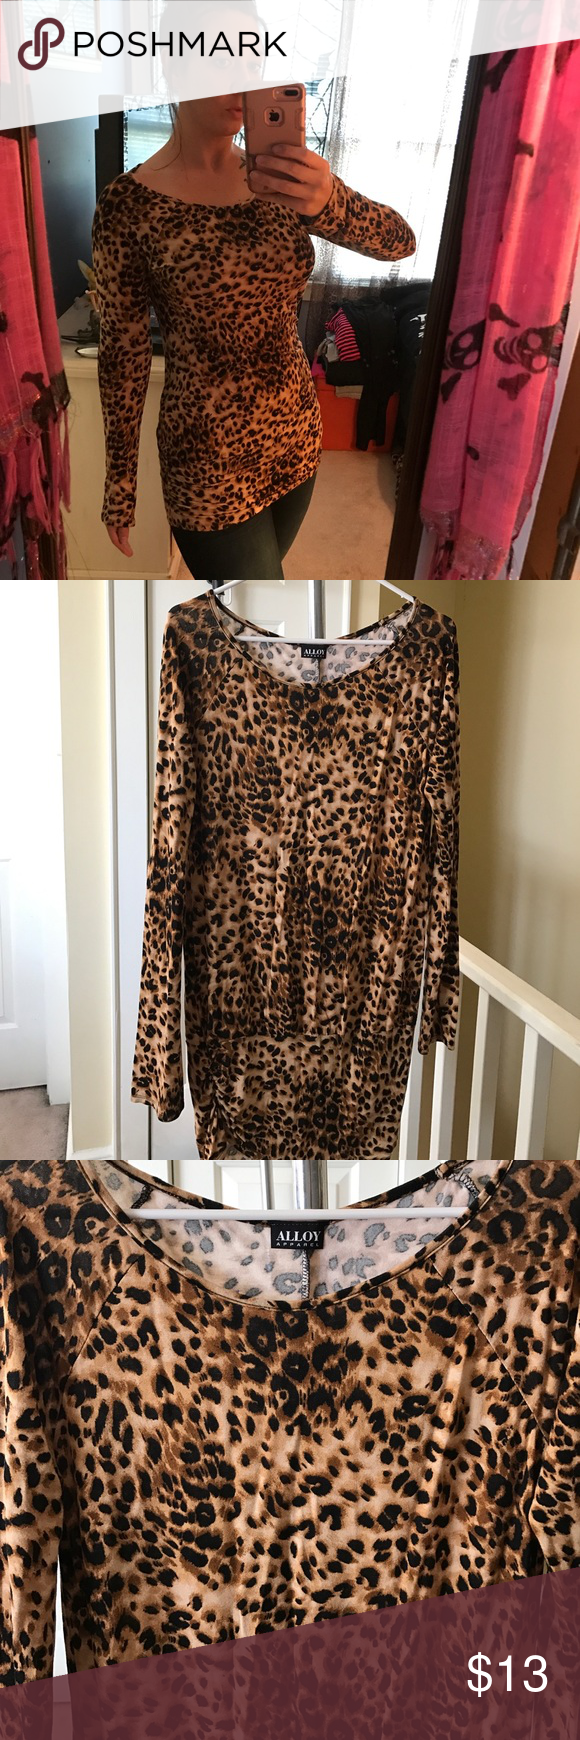 Alloy Long sleeve leopard print tunic top! Super cute leopard print long sleeve tunic top! Could be worn with jeans or leggings or even worn as a dress! Size XL brand-new never worn only tried on! ALLOY Tops Tunics